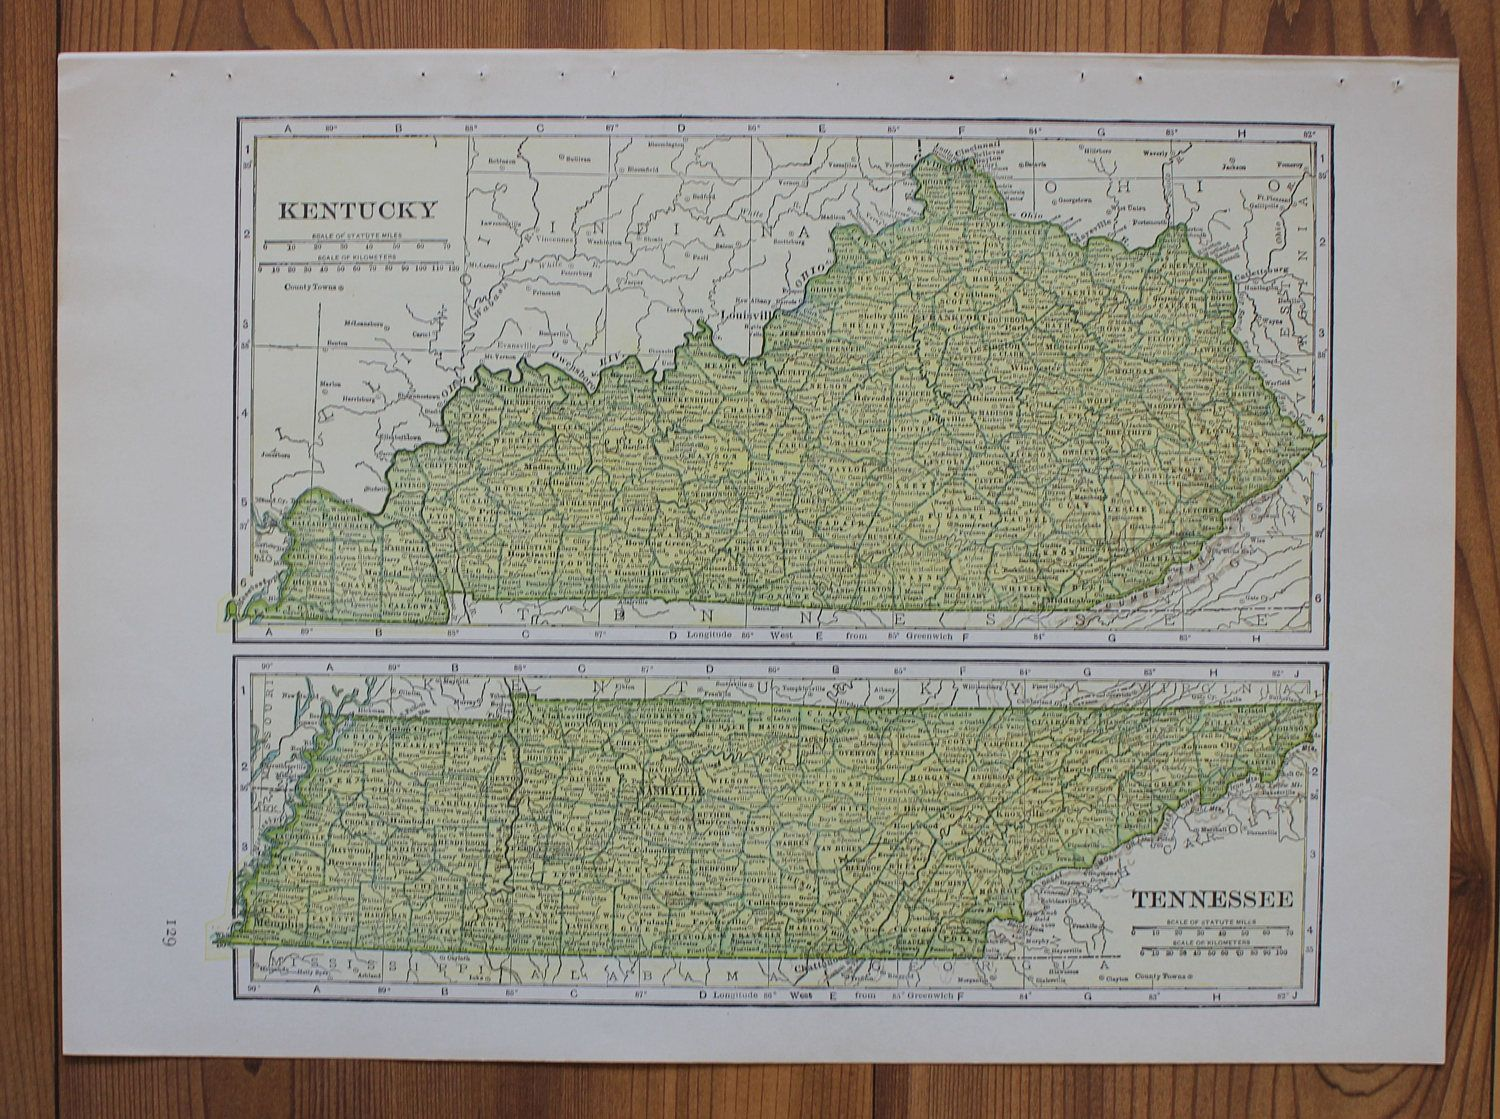 Kentucky tennessee or louisiana large map 1943 columbia standard kentucky tennessee or louisiana large map 1943 columbia standard illustrated world atlas antique gumiabroncs Choice Image